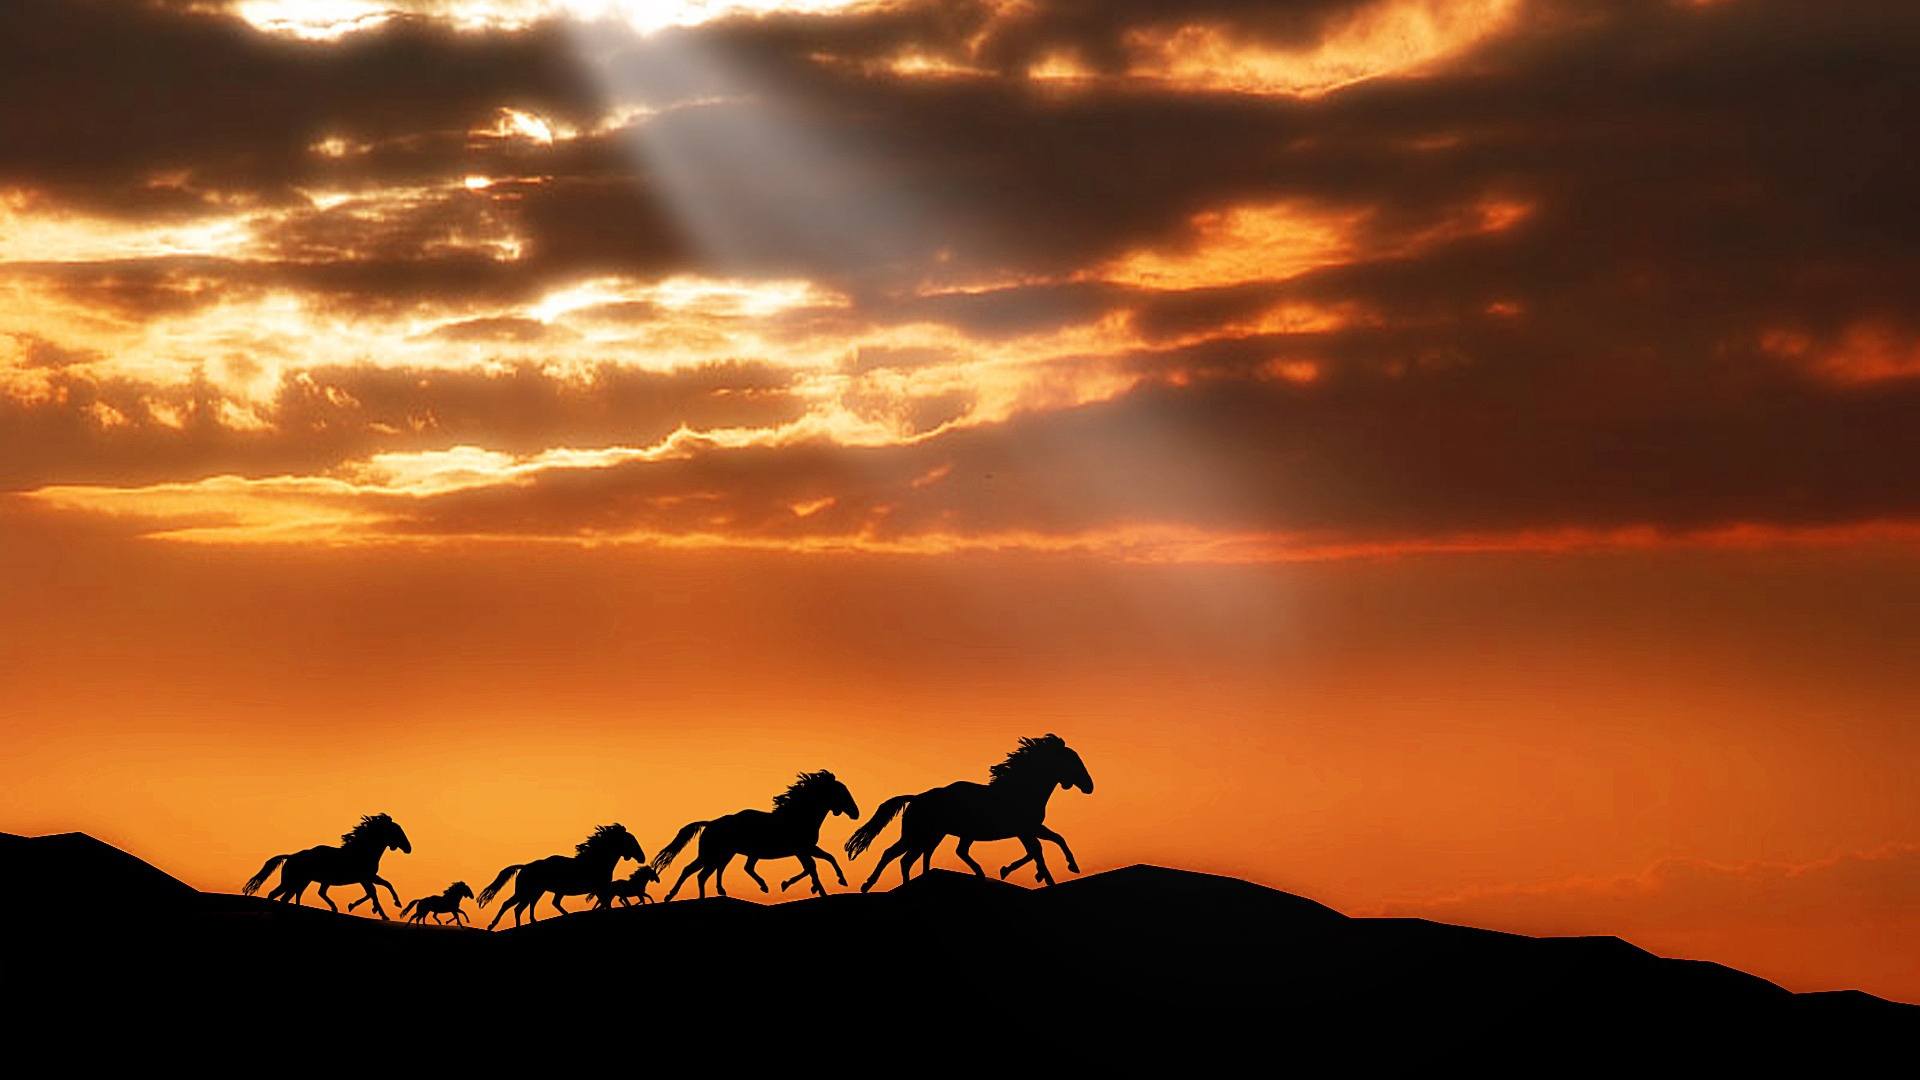 Earnings Disclaimer >> Download Wallpaper 1920x1080 horse, herd, sunset, silhouettes, escape Full HD 1080p HD Background